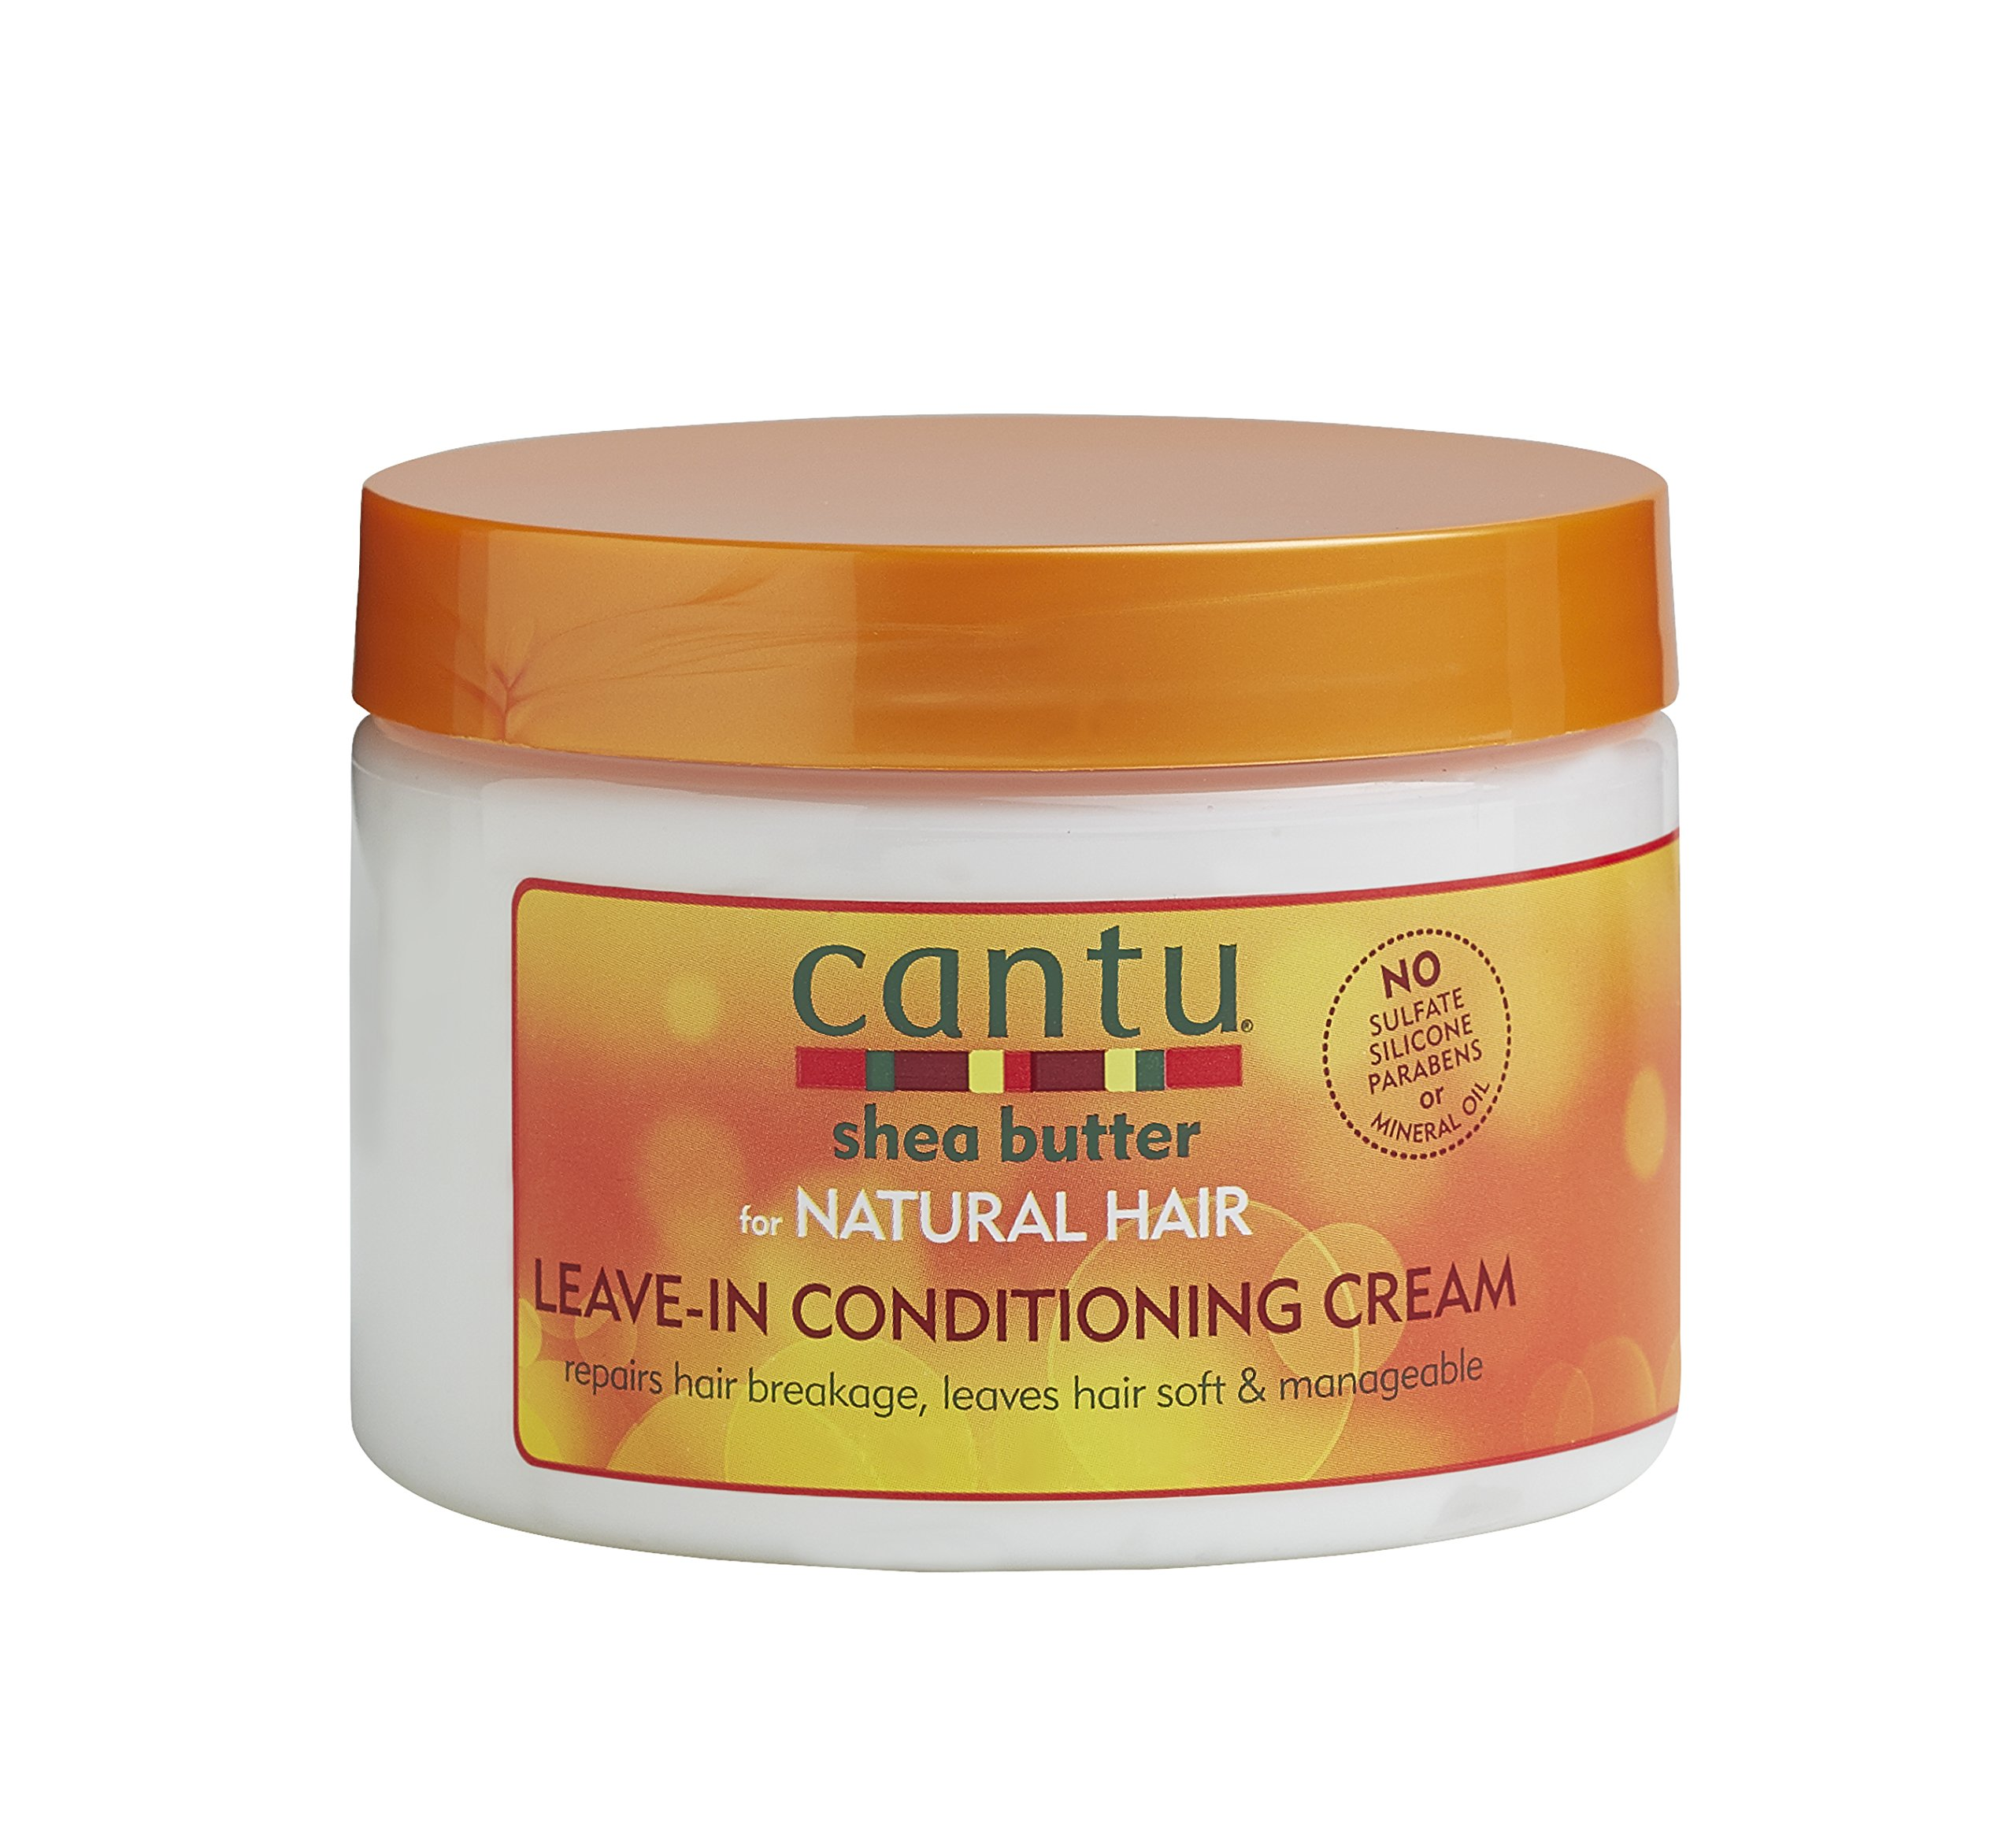 Cantu Shea Butter for Natural Hair Leave in Conditioning Cream, 12 Ounce